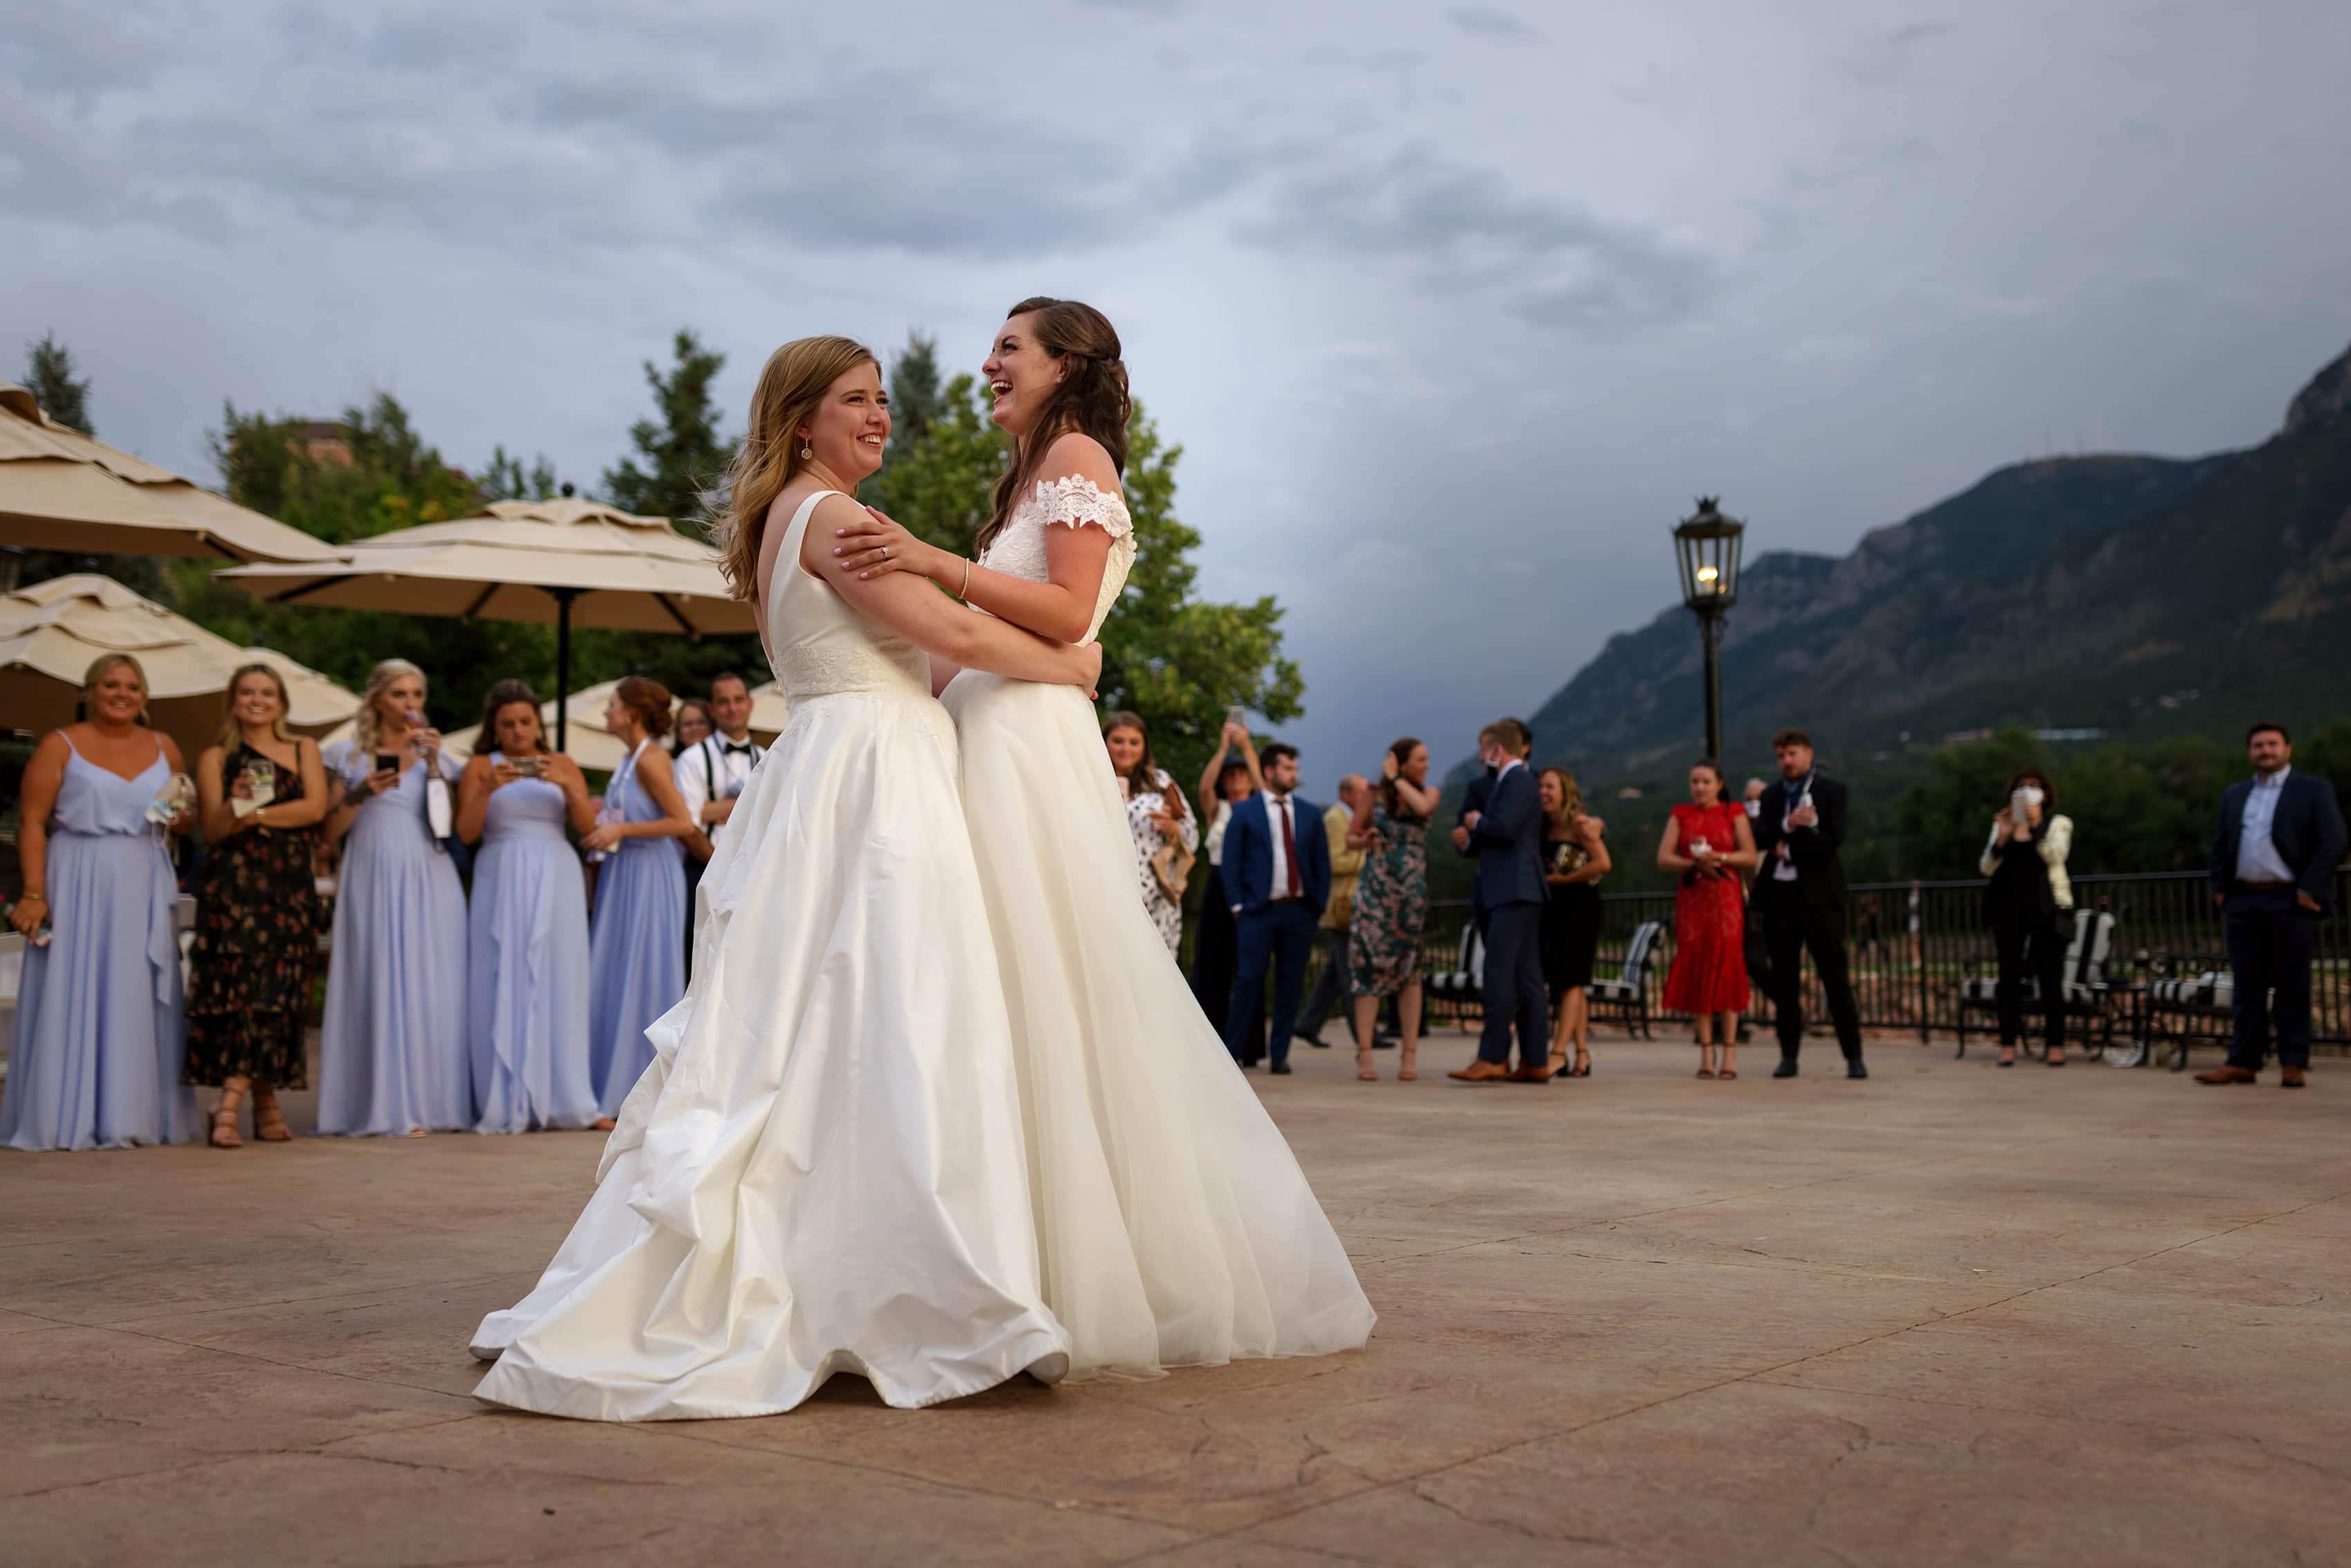 brides share first dance outdoors on the patio during wedding reception at The Broadmoor Hotel